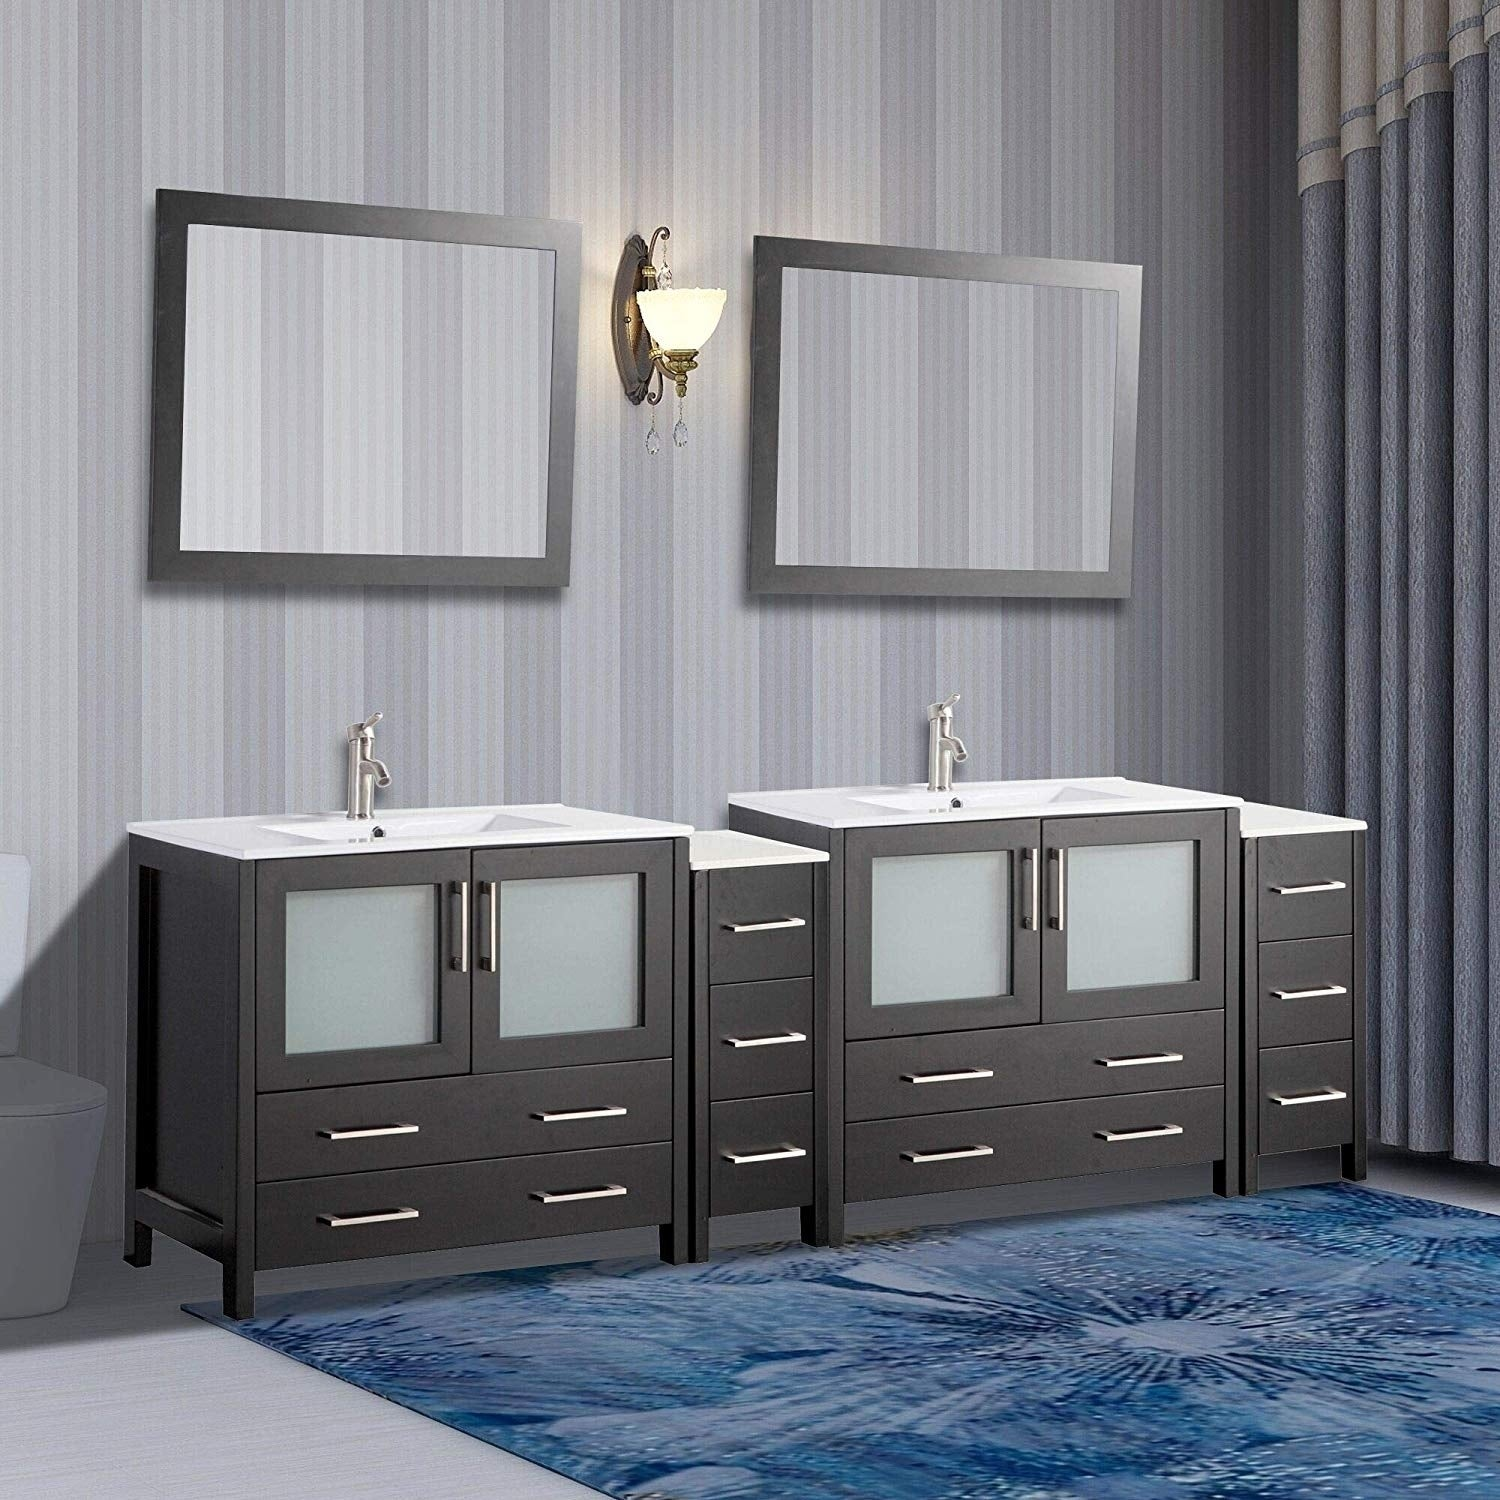 Vanity Art 96 Inch Double Sink Bathroom Vanity Set Overstock 12609925